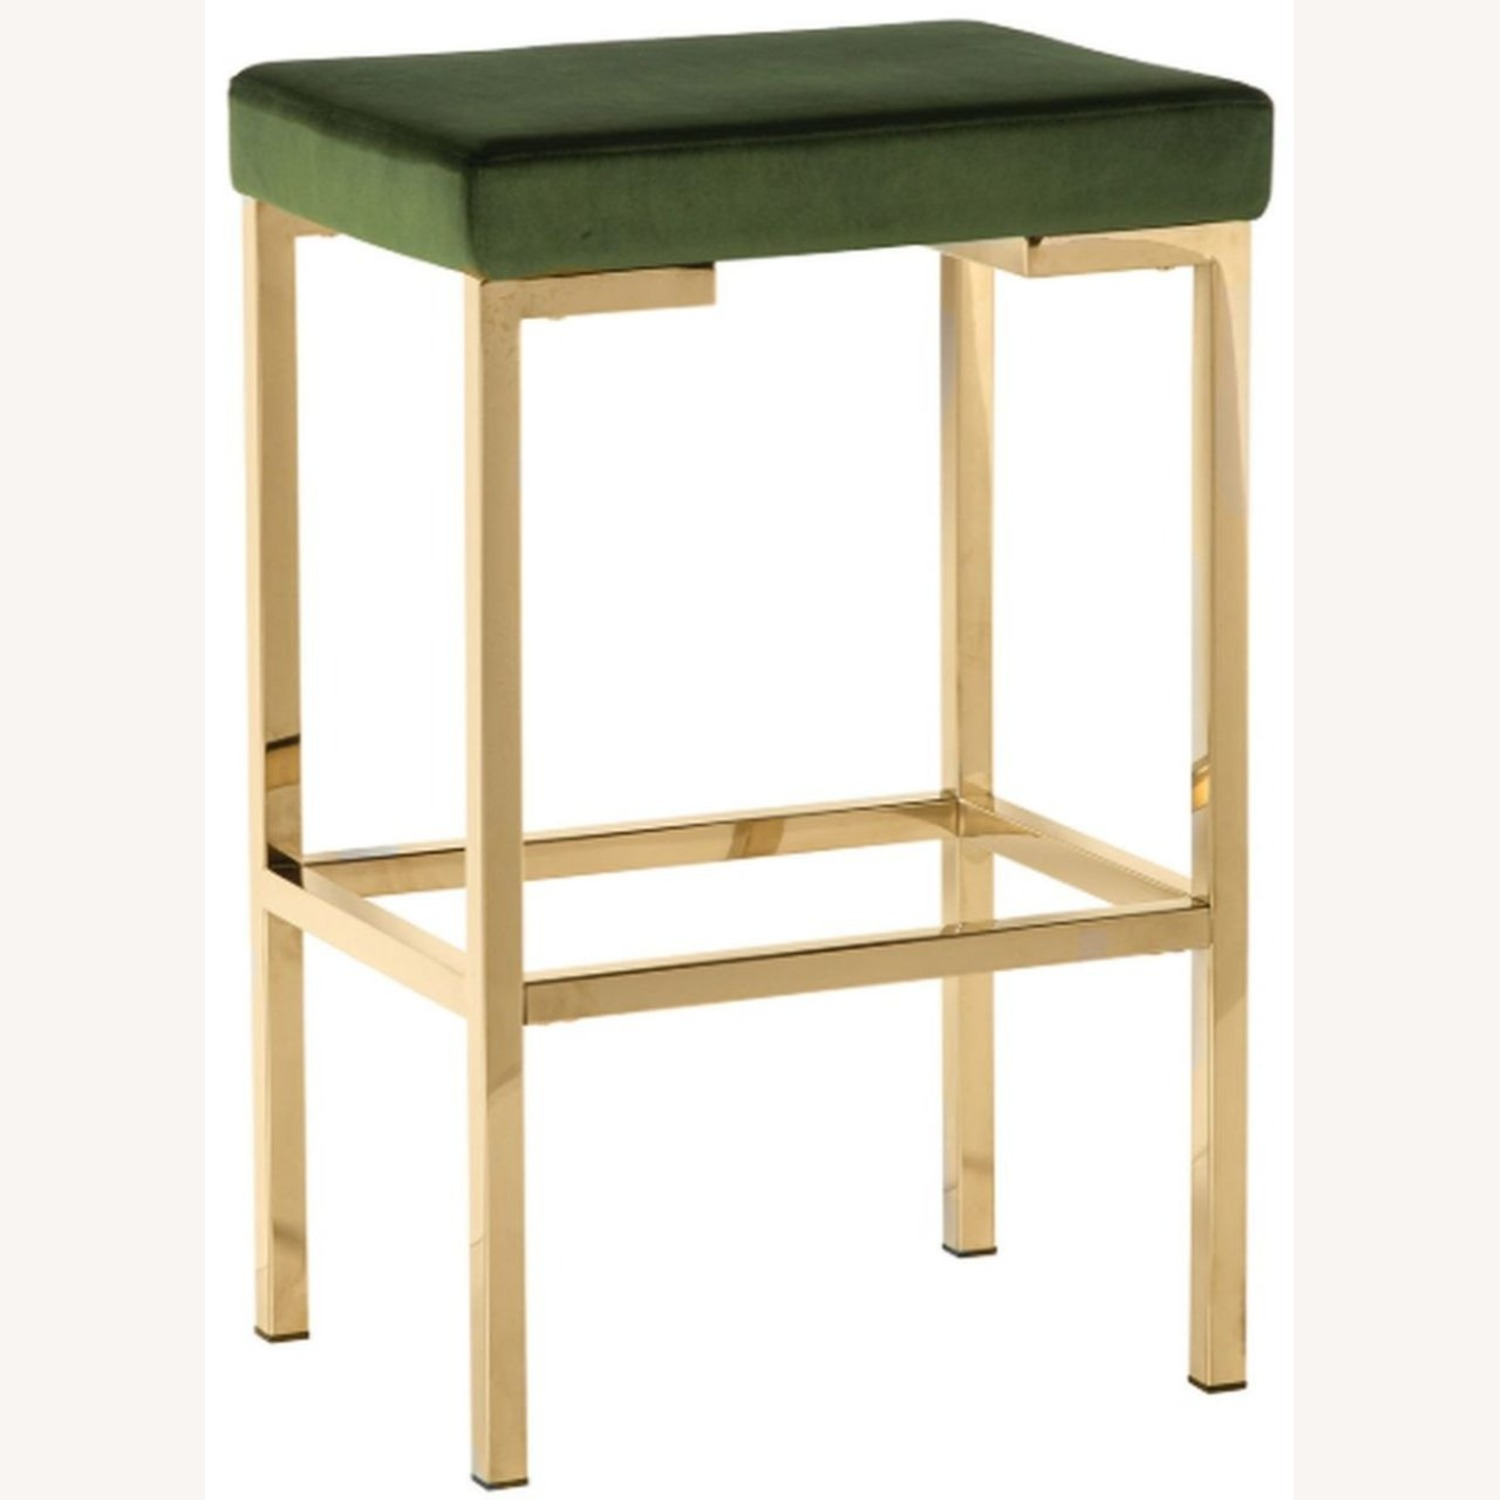 Minimalist Bar Stool In Green W/ Rose Brass Base - image-0